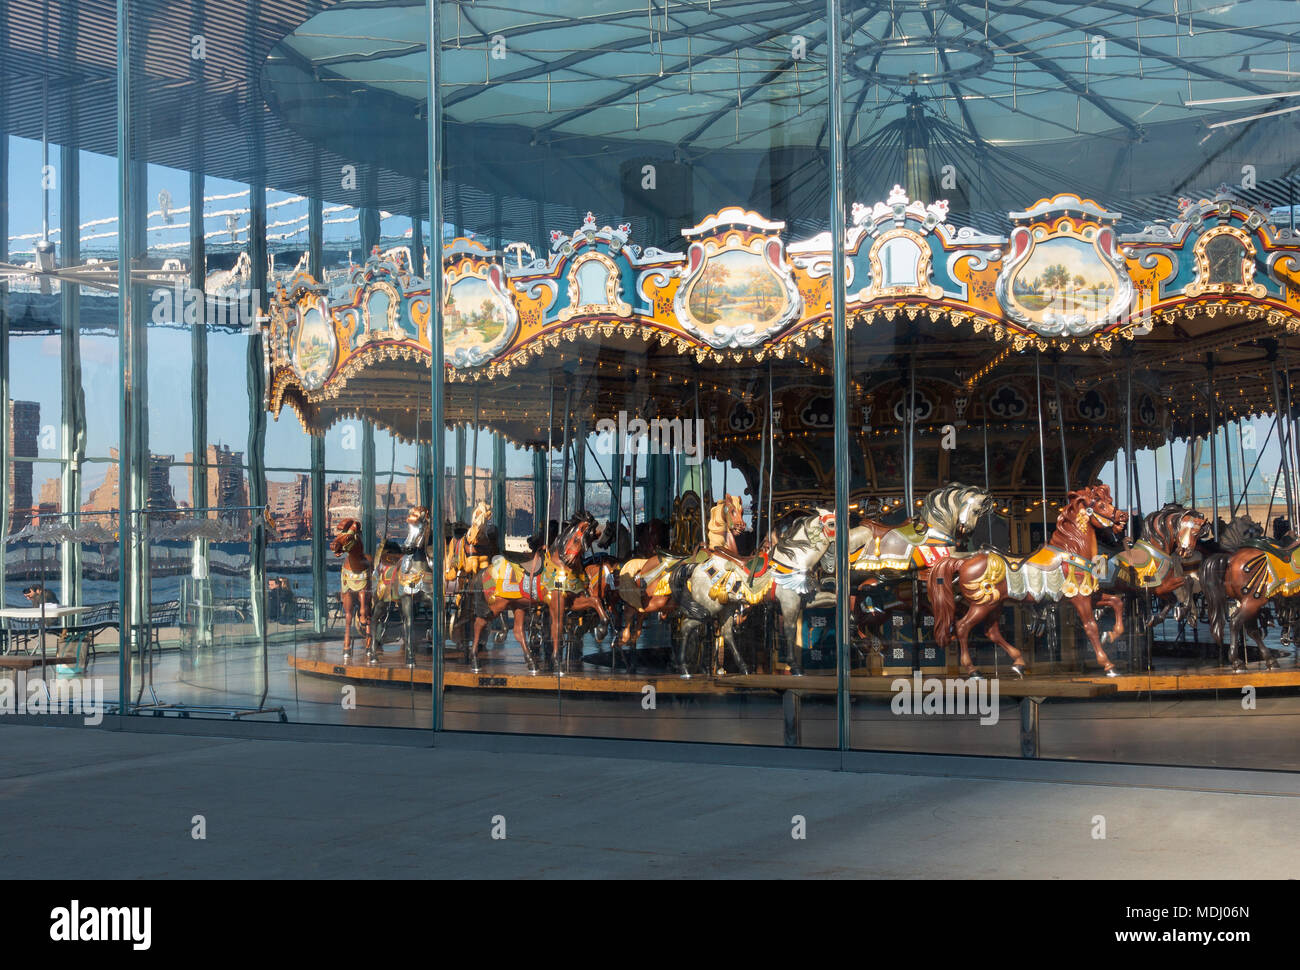 Jane's Carousel is shut down for the day - Stock Image